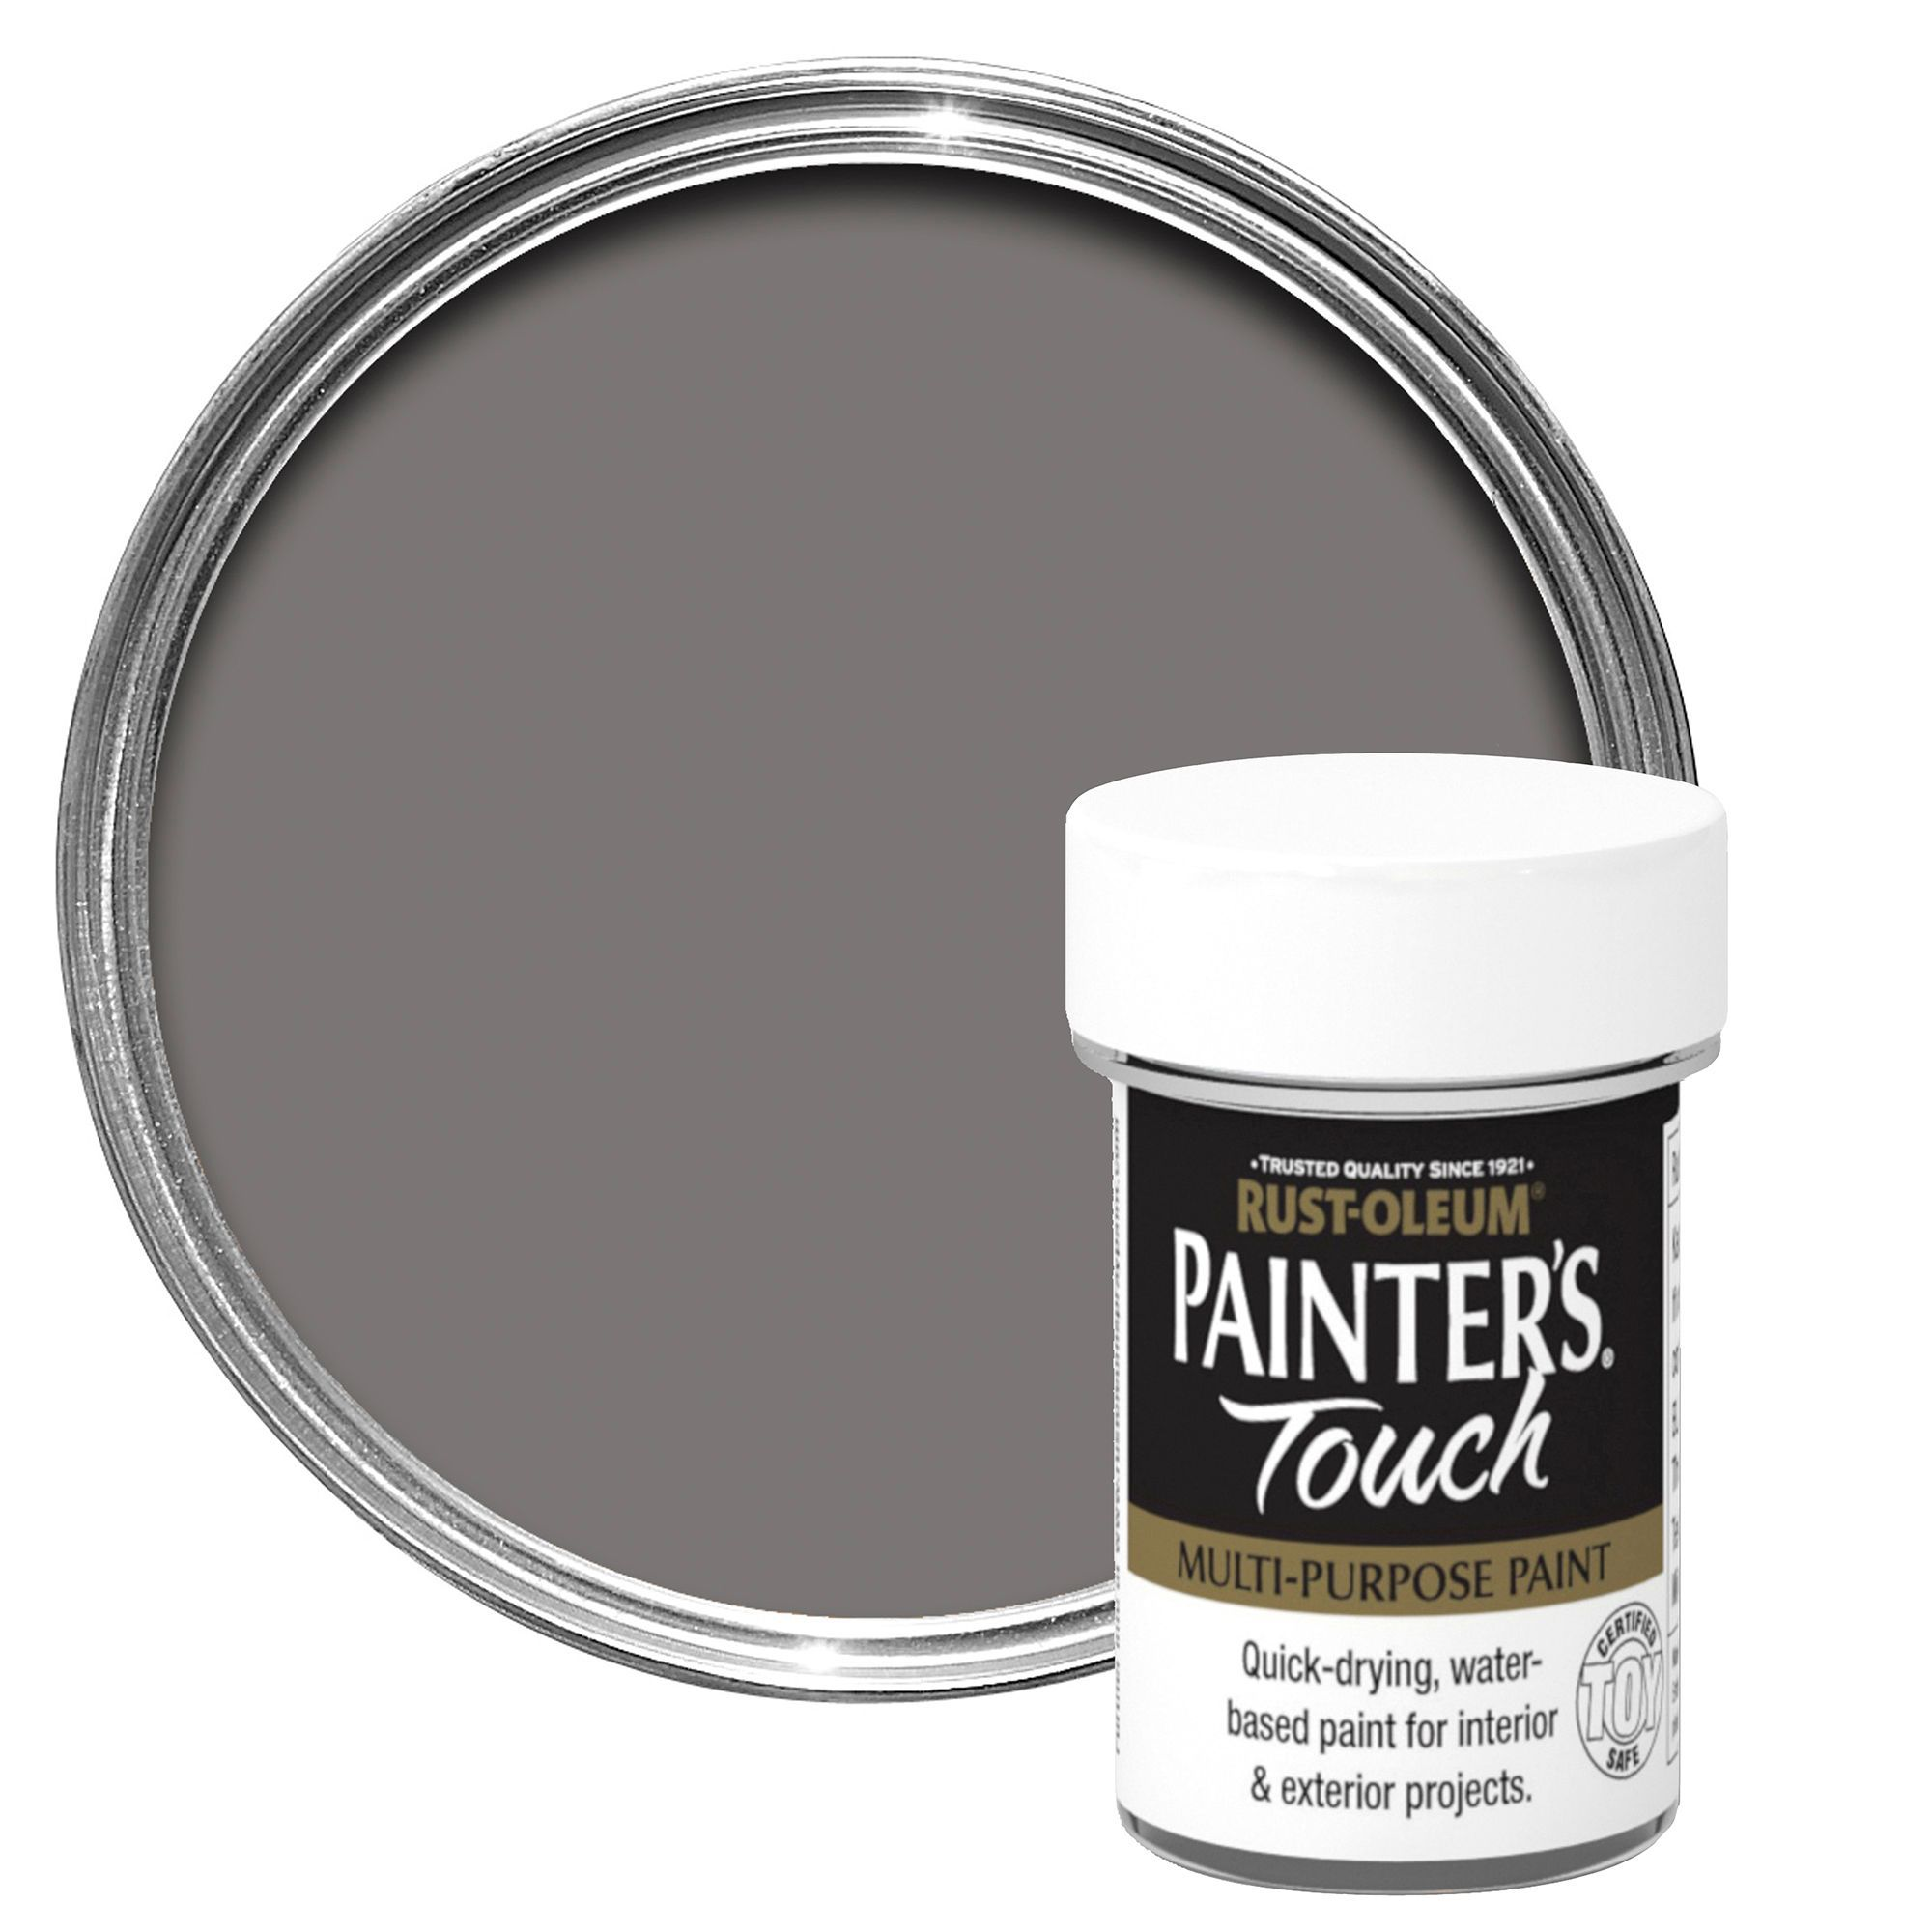 Rust-Oleum Painter's Touch Interior & Exterior Dark Grey Gloss Multipurpose Paint 20ml